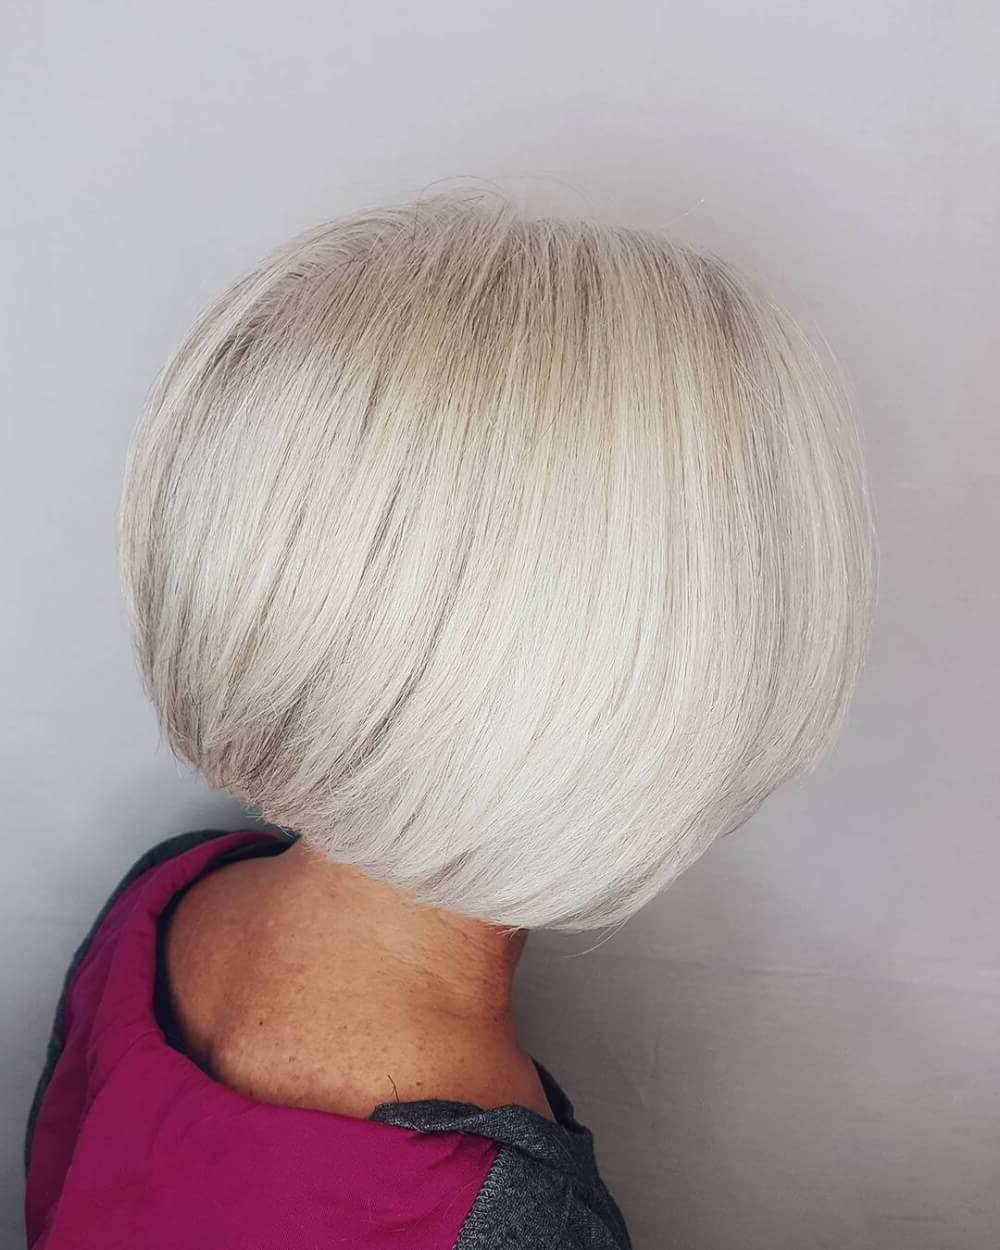 Popular Simple, Chic And Bobbed Hairstyles Inside 50 Chic Short Bob Hairstyles & Haircuts For Women In 2019 (Gallery 20 of 20)